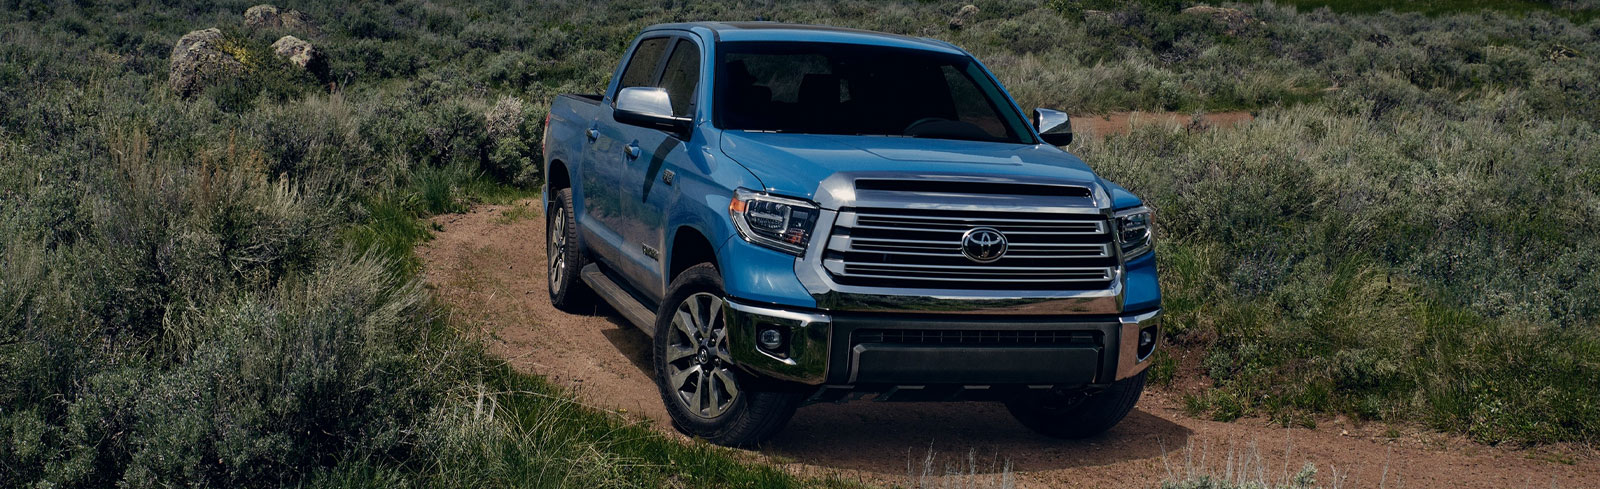 All New 2020 Toyota Tundra for Sale at Future Toyota of Yuba City